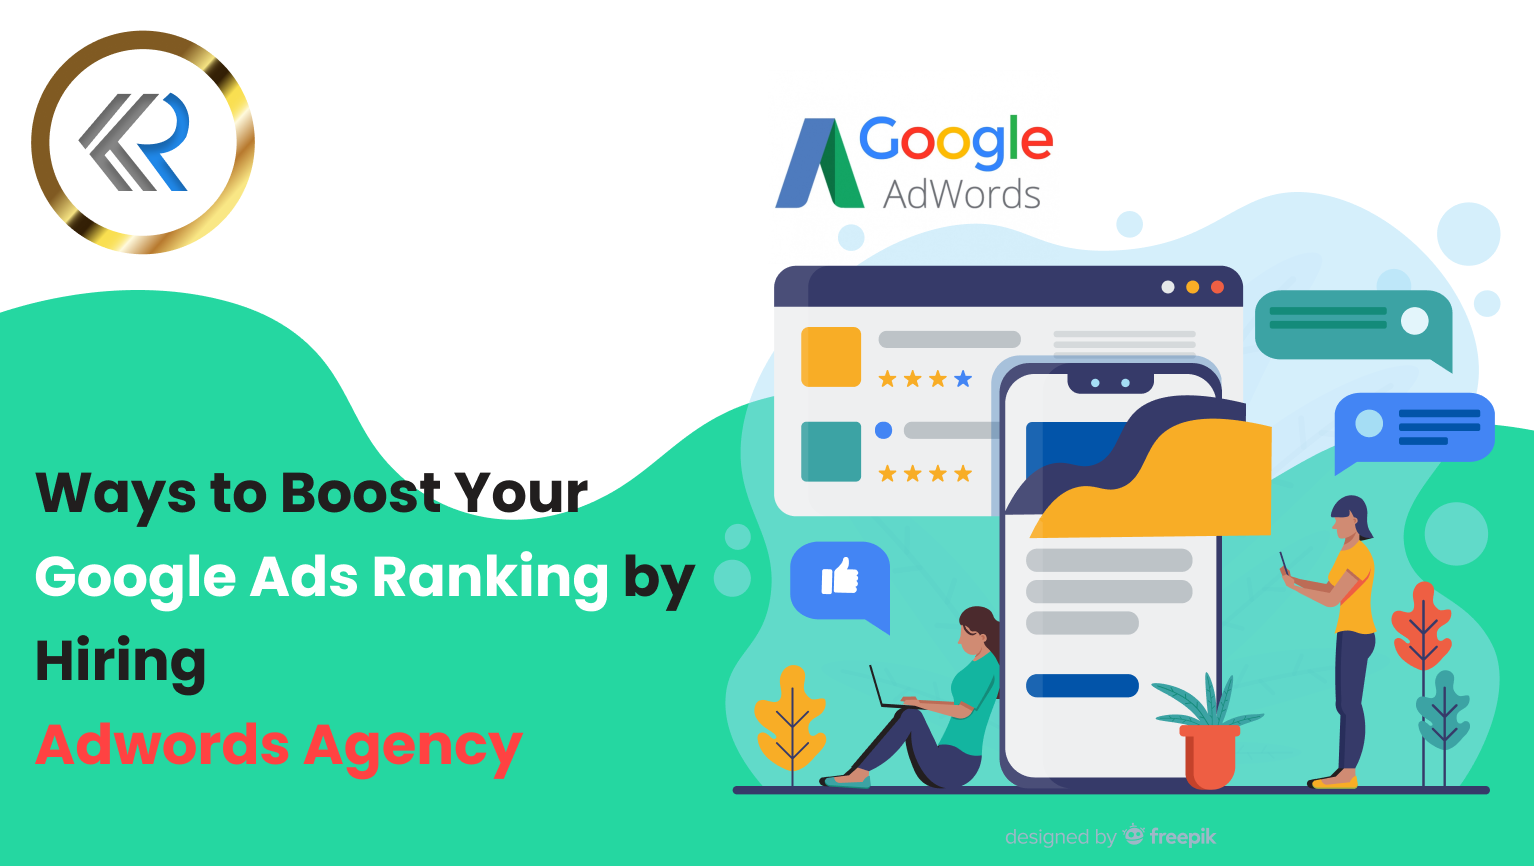 Boost Ad Ranking by Hiring Adwords Agency